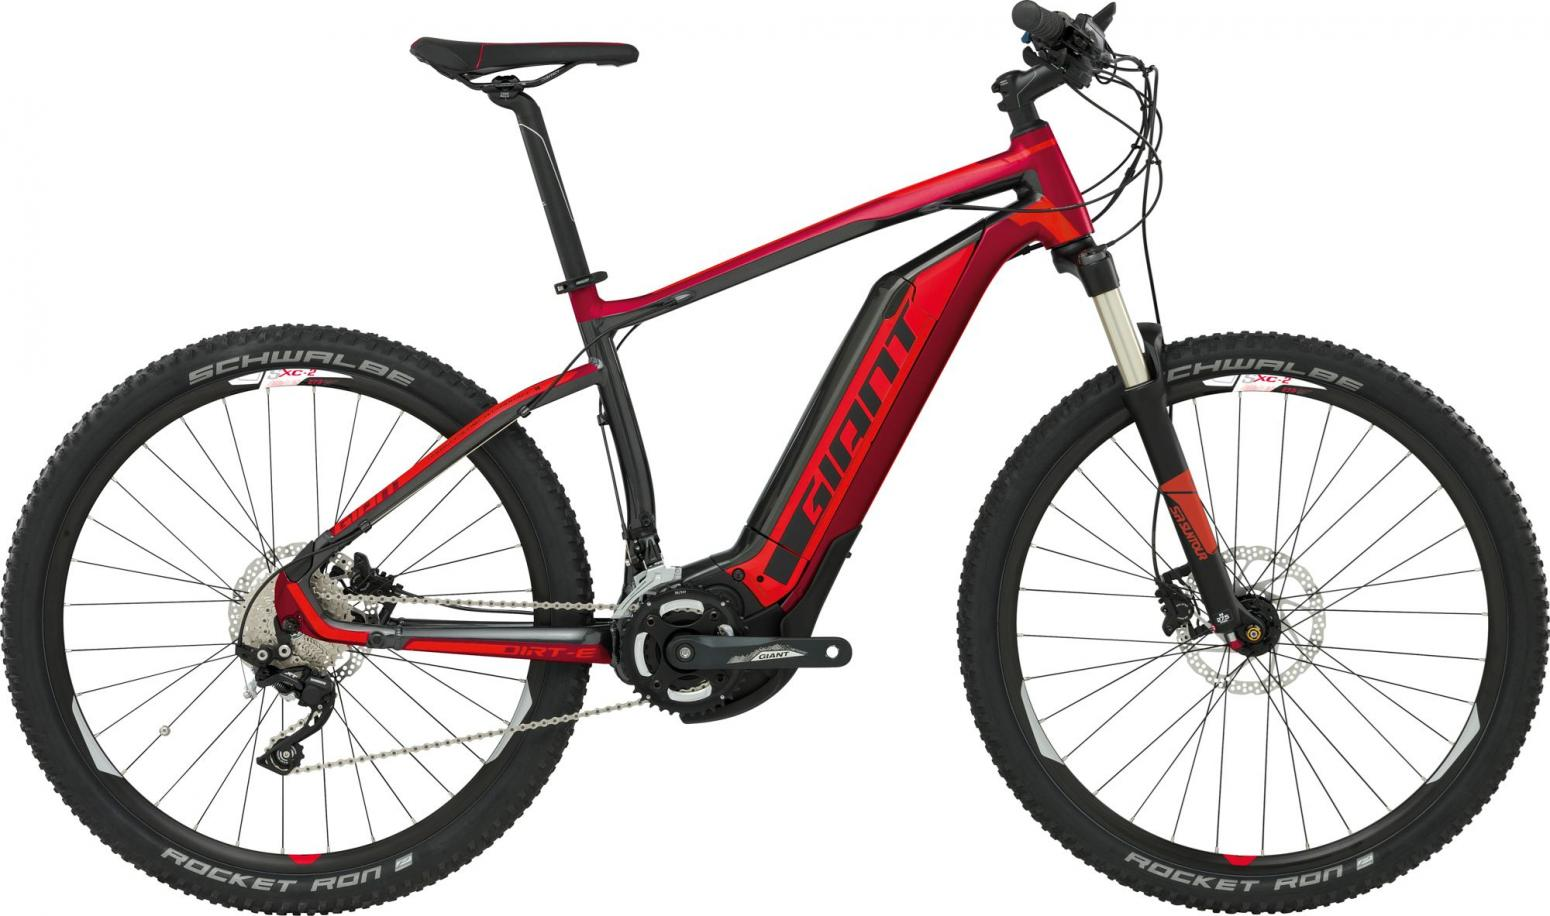 Giant MTB E-Bike Dirt-E+ 1 2016